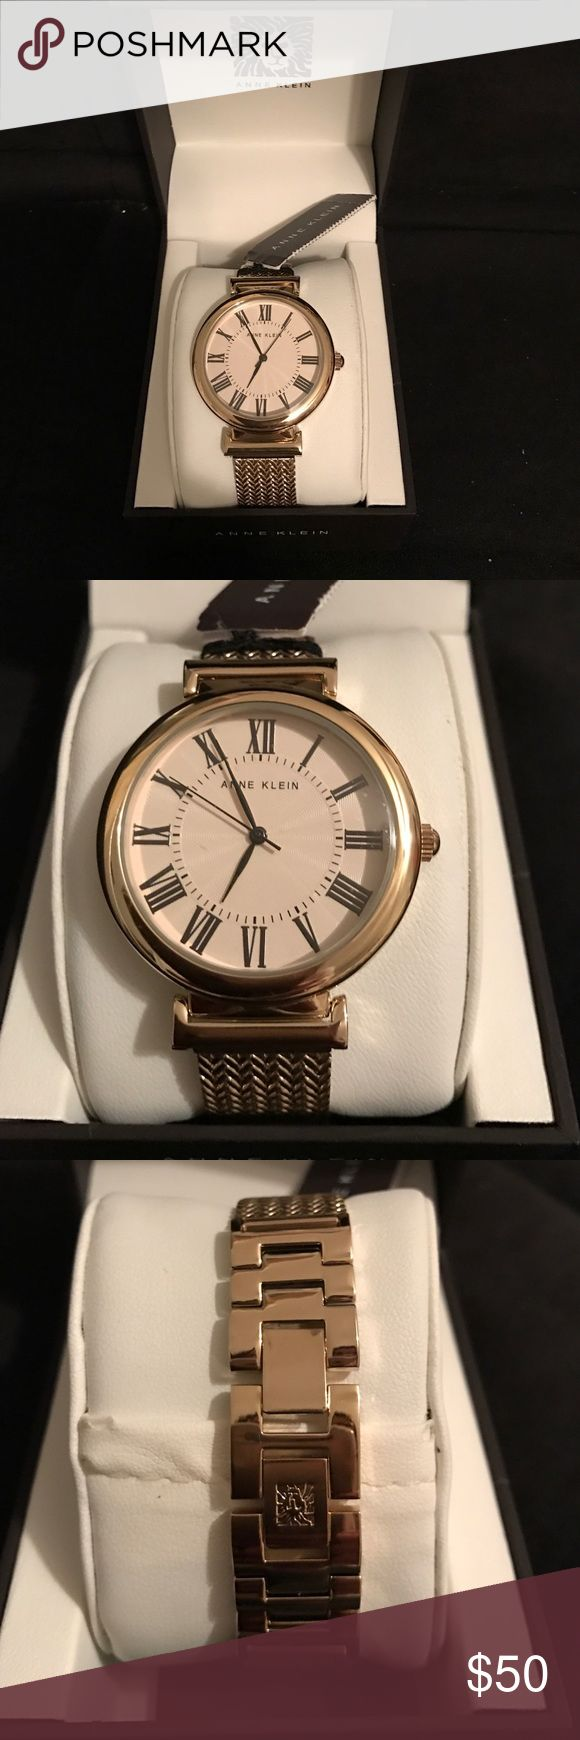 Gold Mesh Band Anne Klein Watch NIB Beautiful watch by Anne Klein. Large round face and Super stylish mesh band. Links can be taken out of clasp to fit any wrist. Battery is working. Anne Klein Accessories Watches